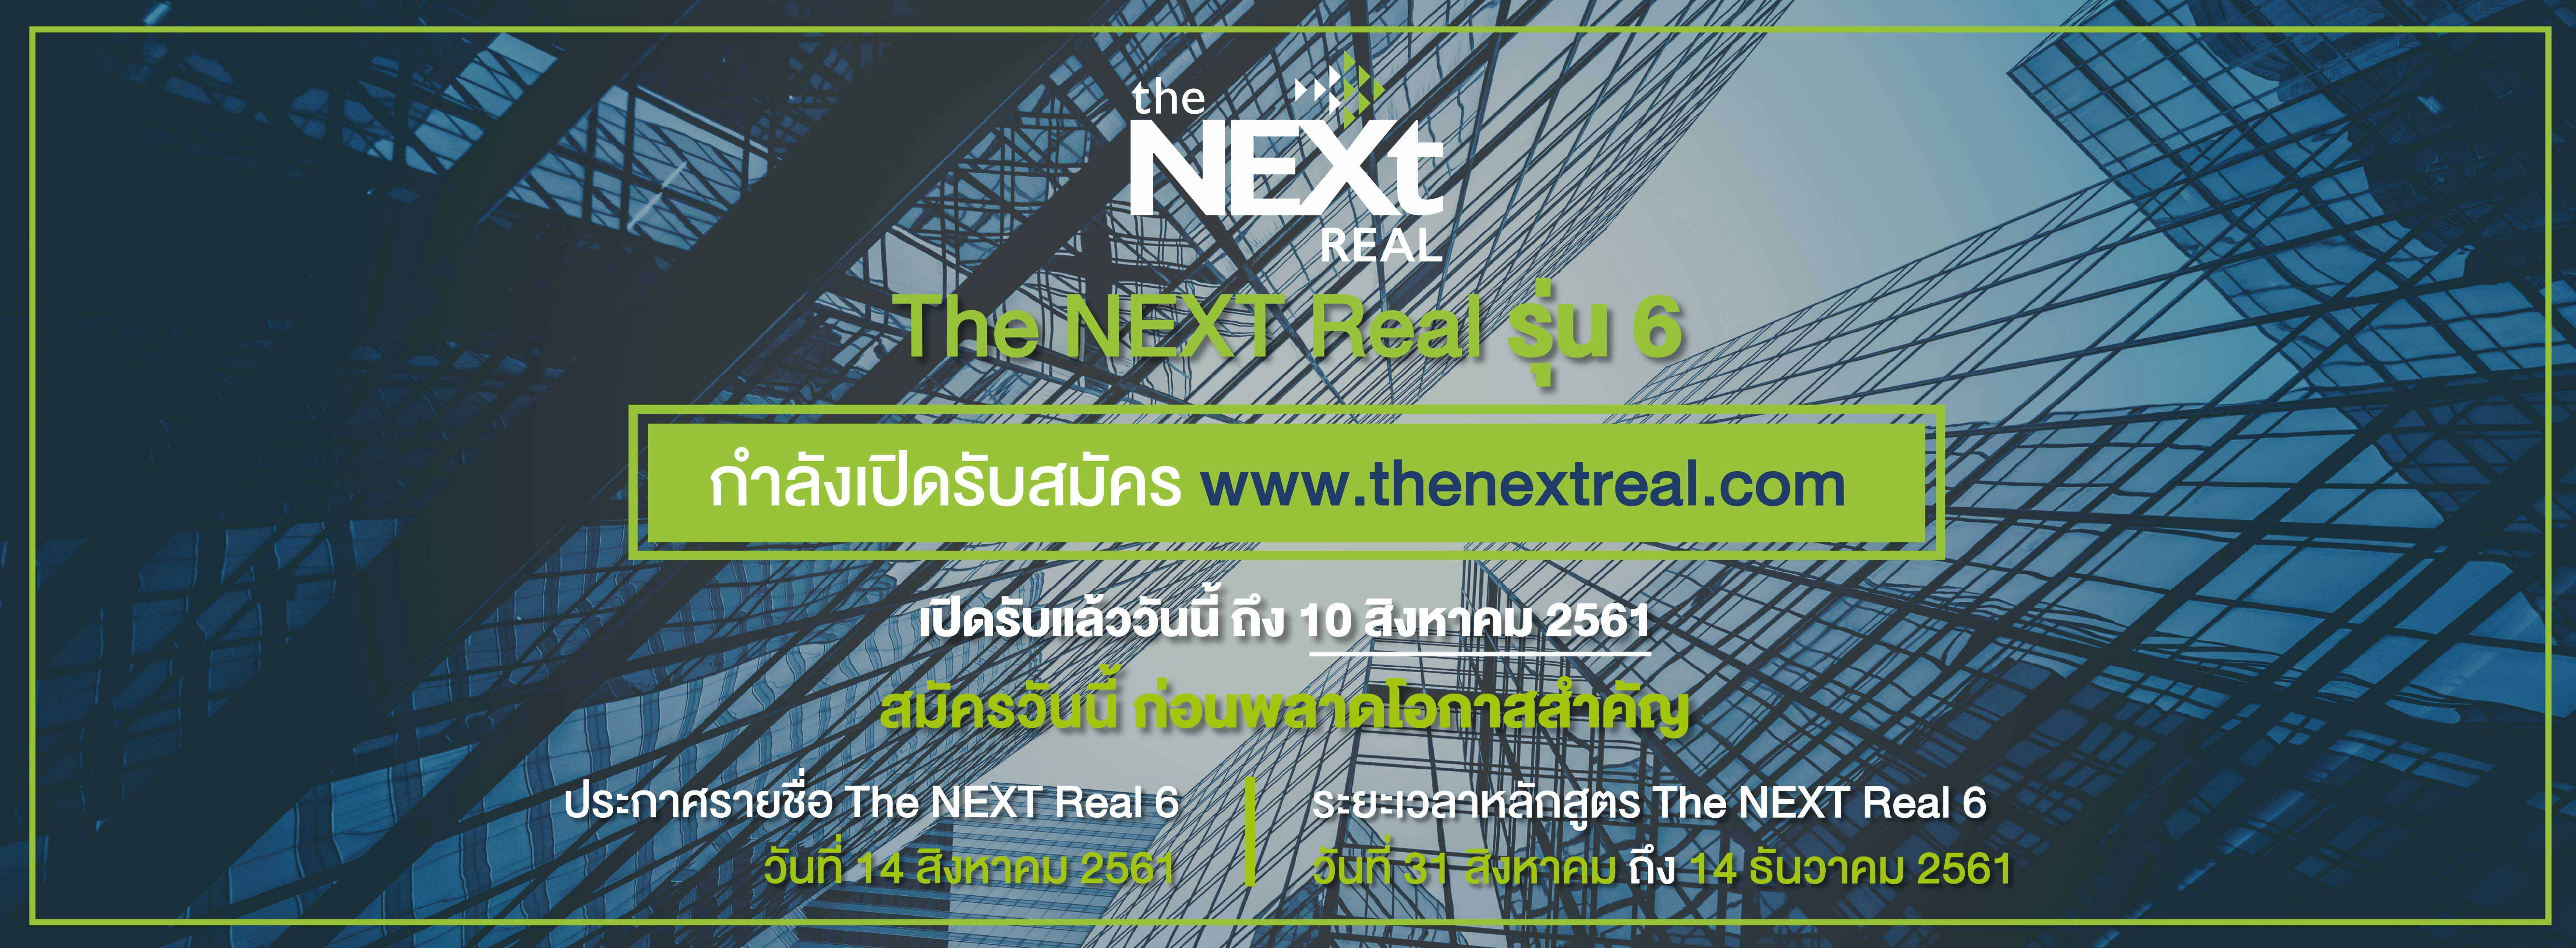 Registration-TheNextReal